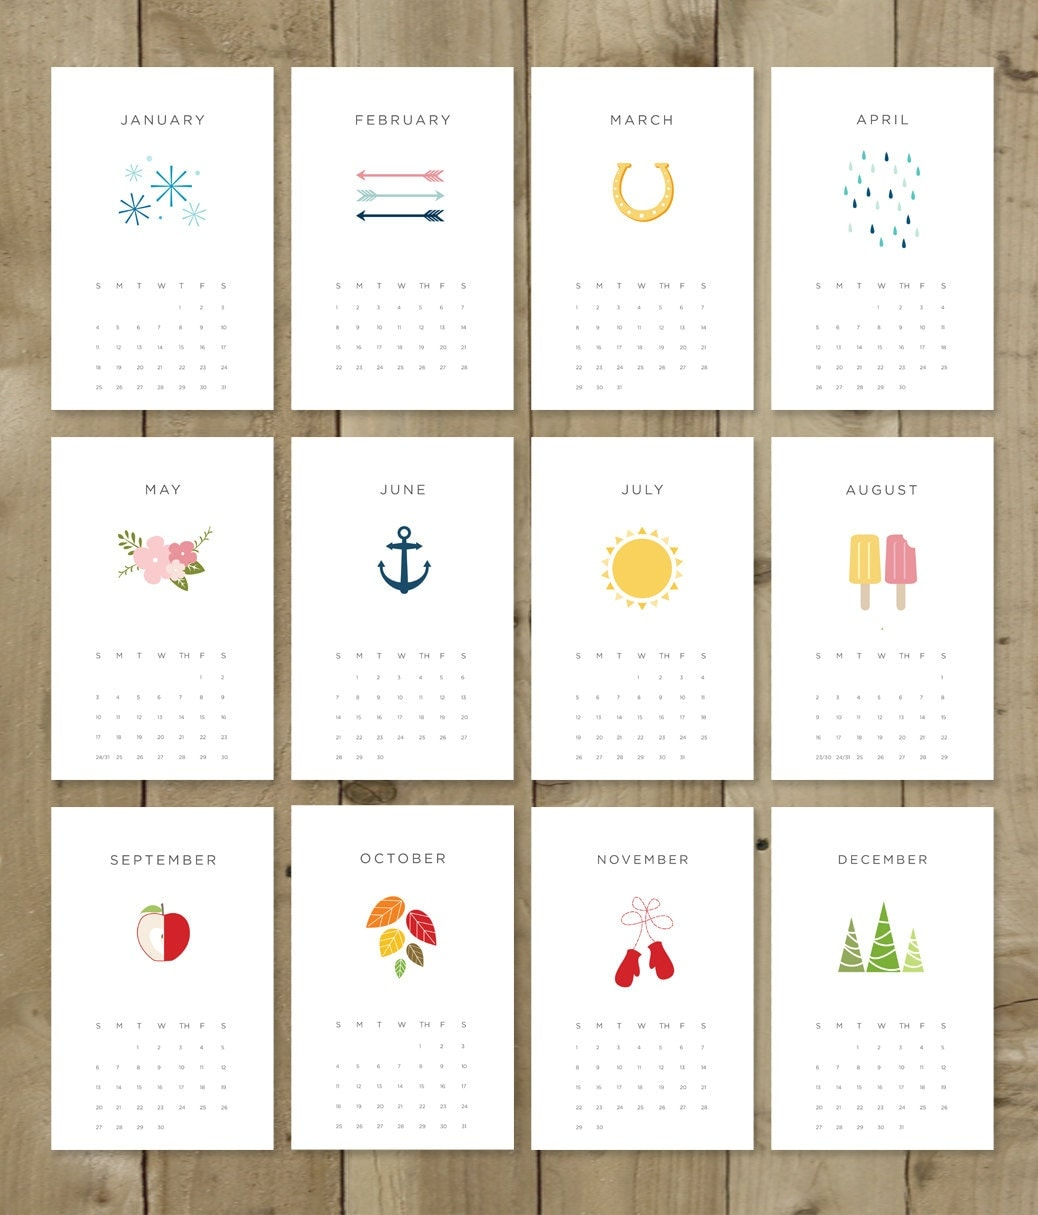 Diy Calendar With Pictures : Printable calendar pdf instant download diy vector